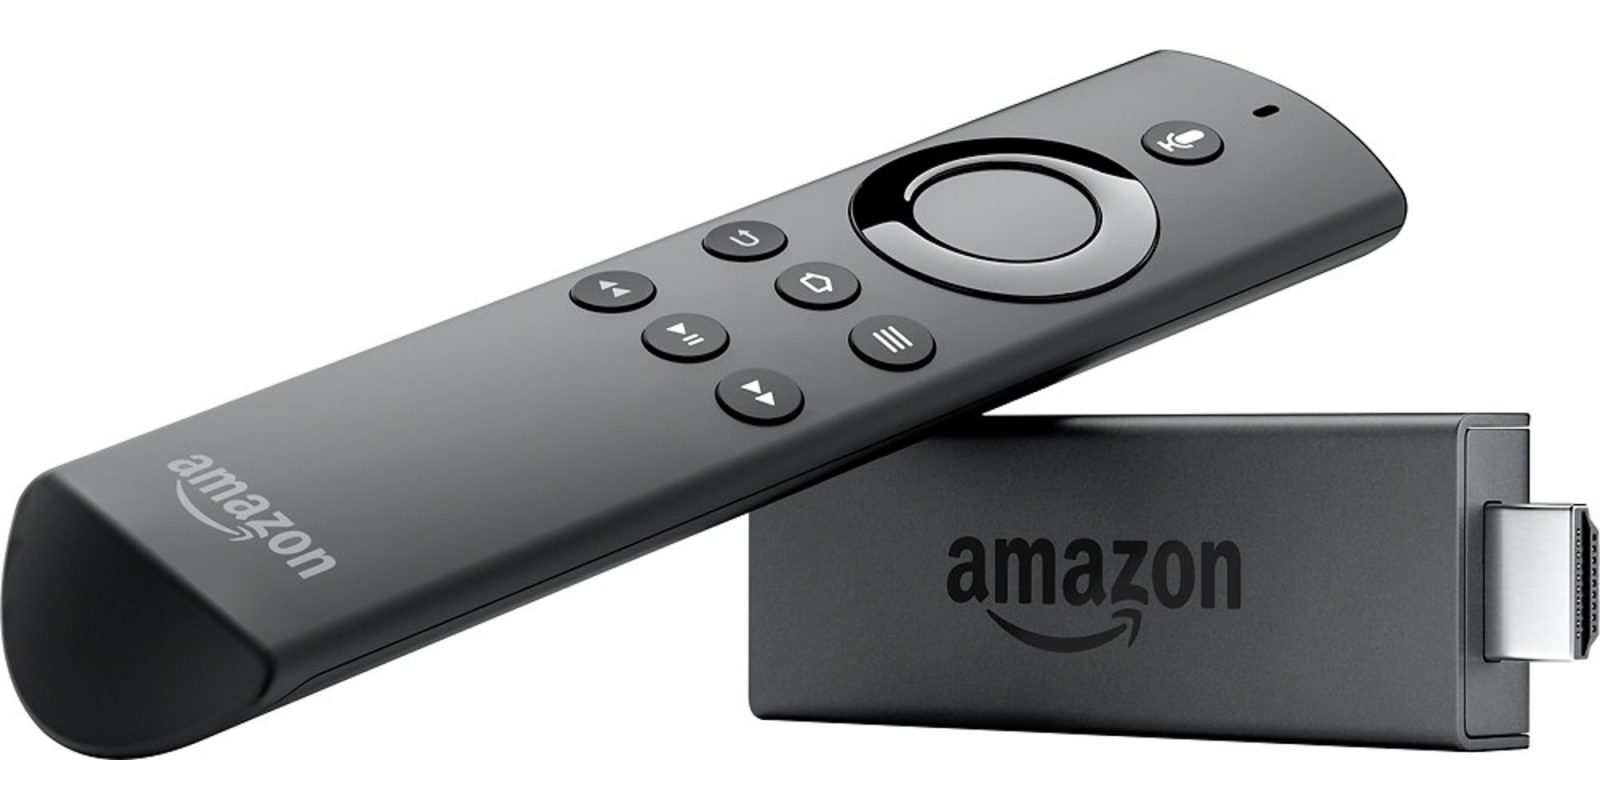 YouTube is now available on all Amazon Fire TV devices